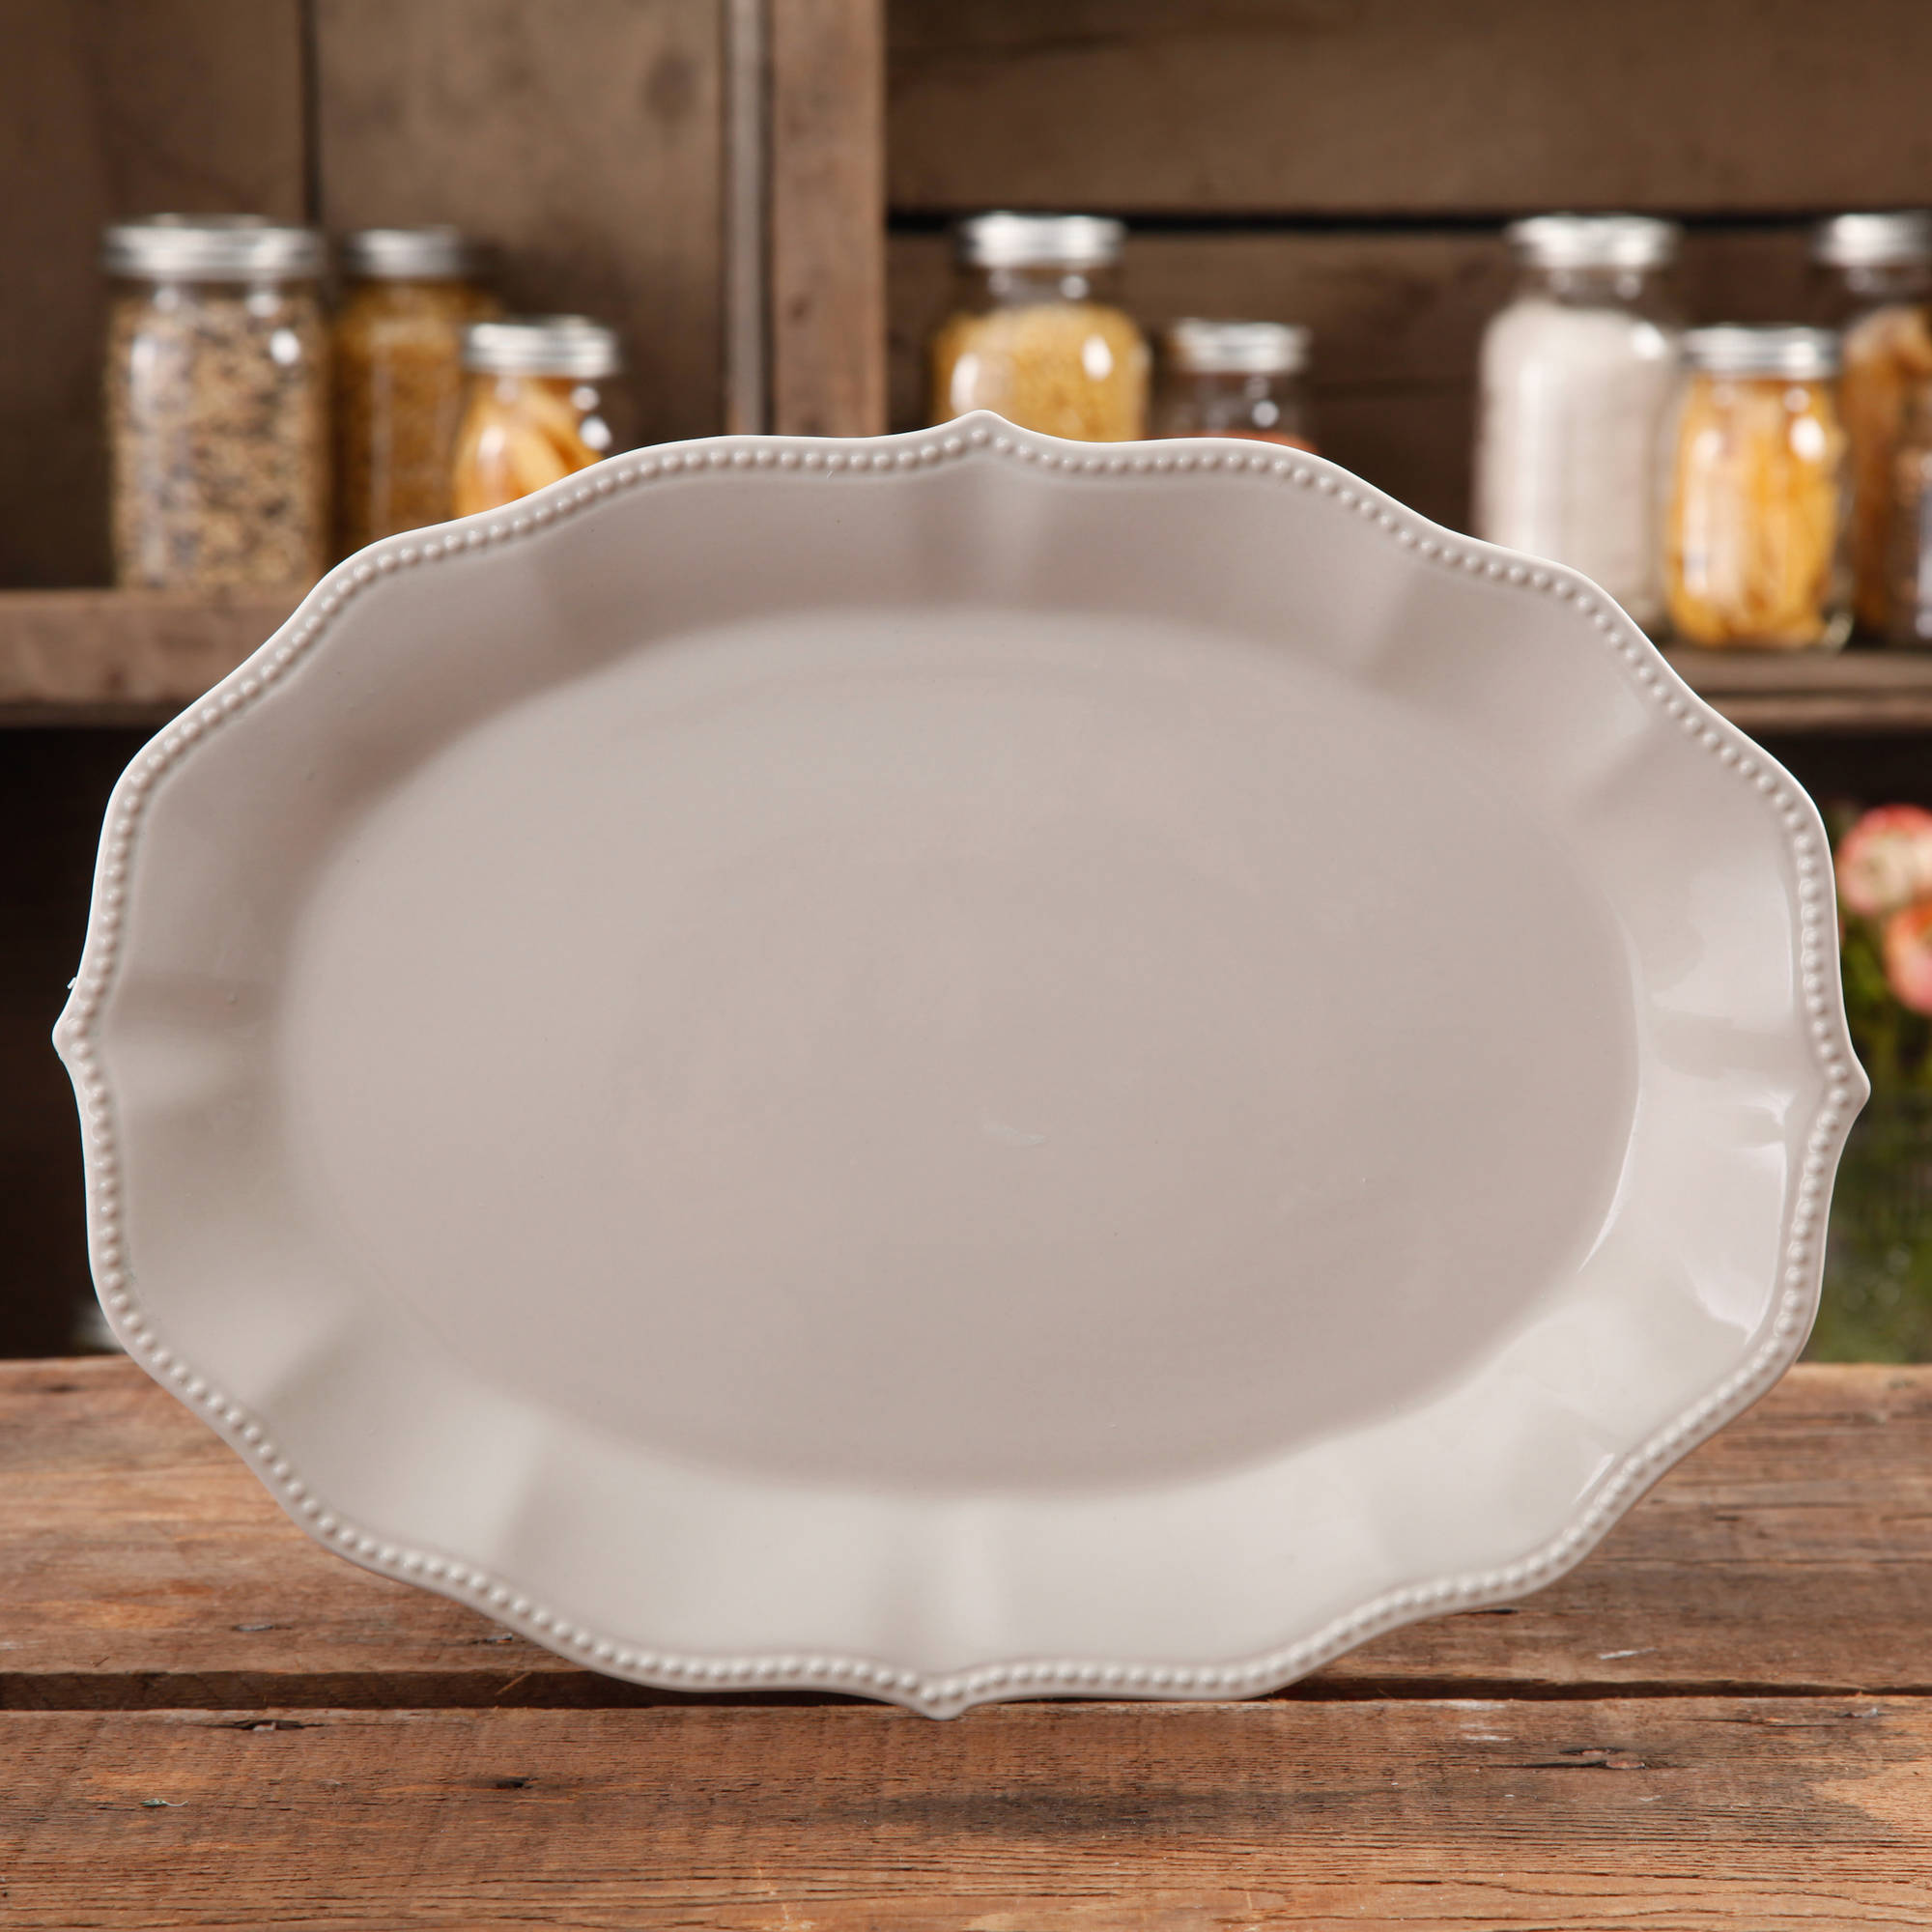 The Pioneer Woman Paige Linen Transparent Glaze Oval Platter